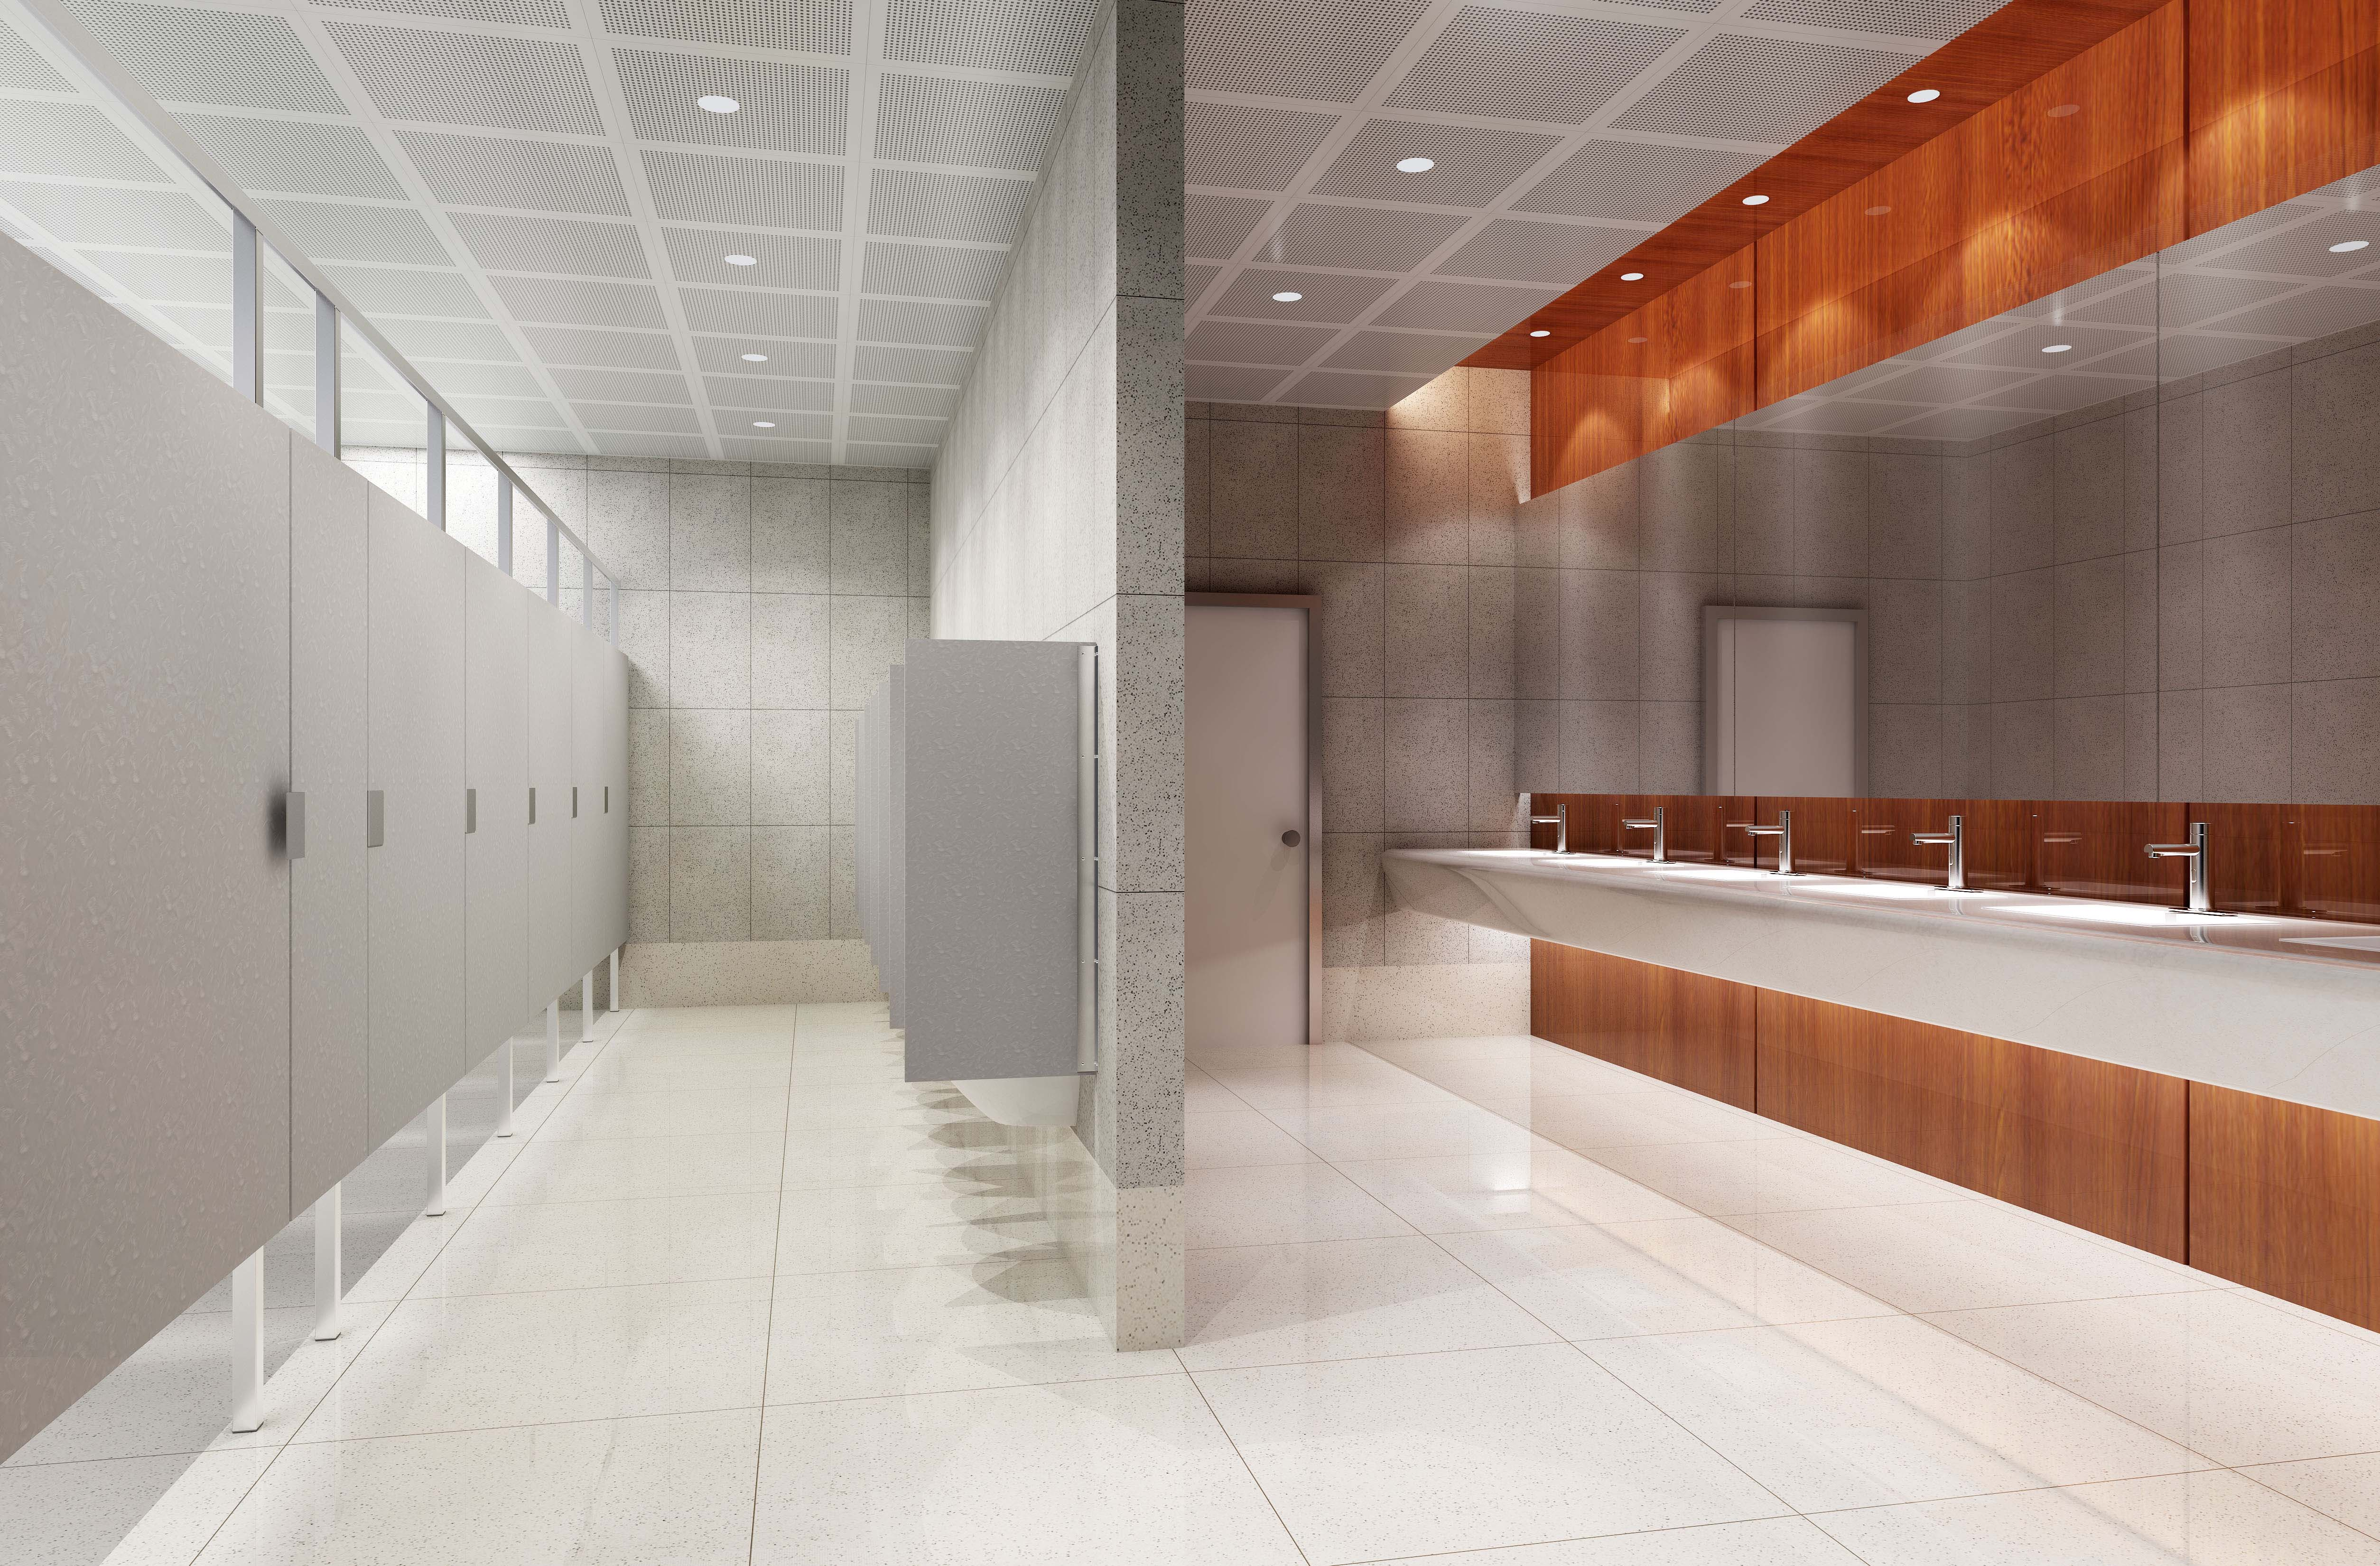 New Eclipse Partitions From Scranton Products Combine Superior Durability Aesthetics And Privacy